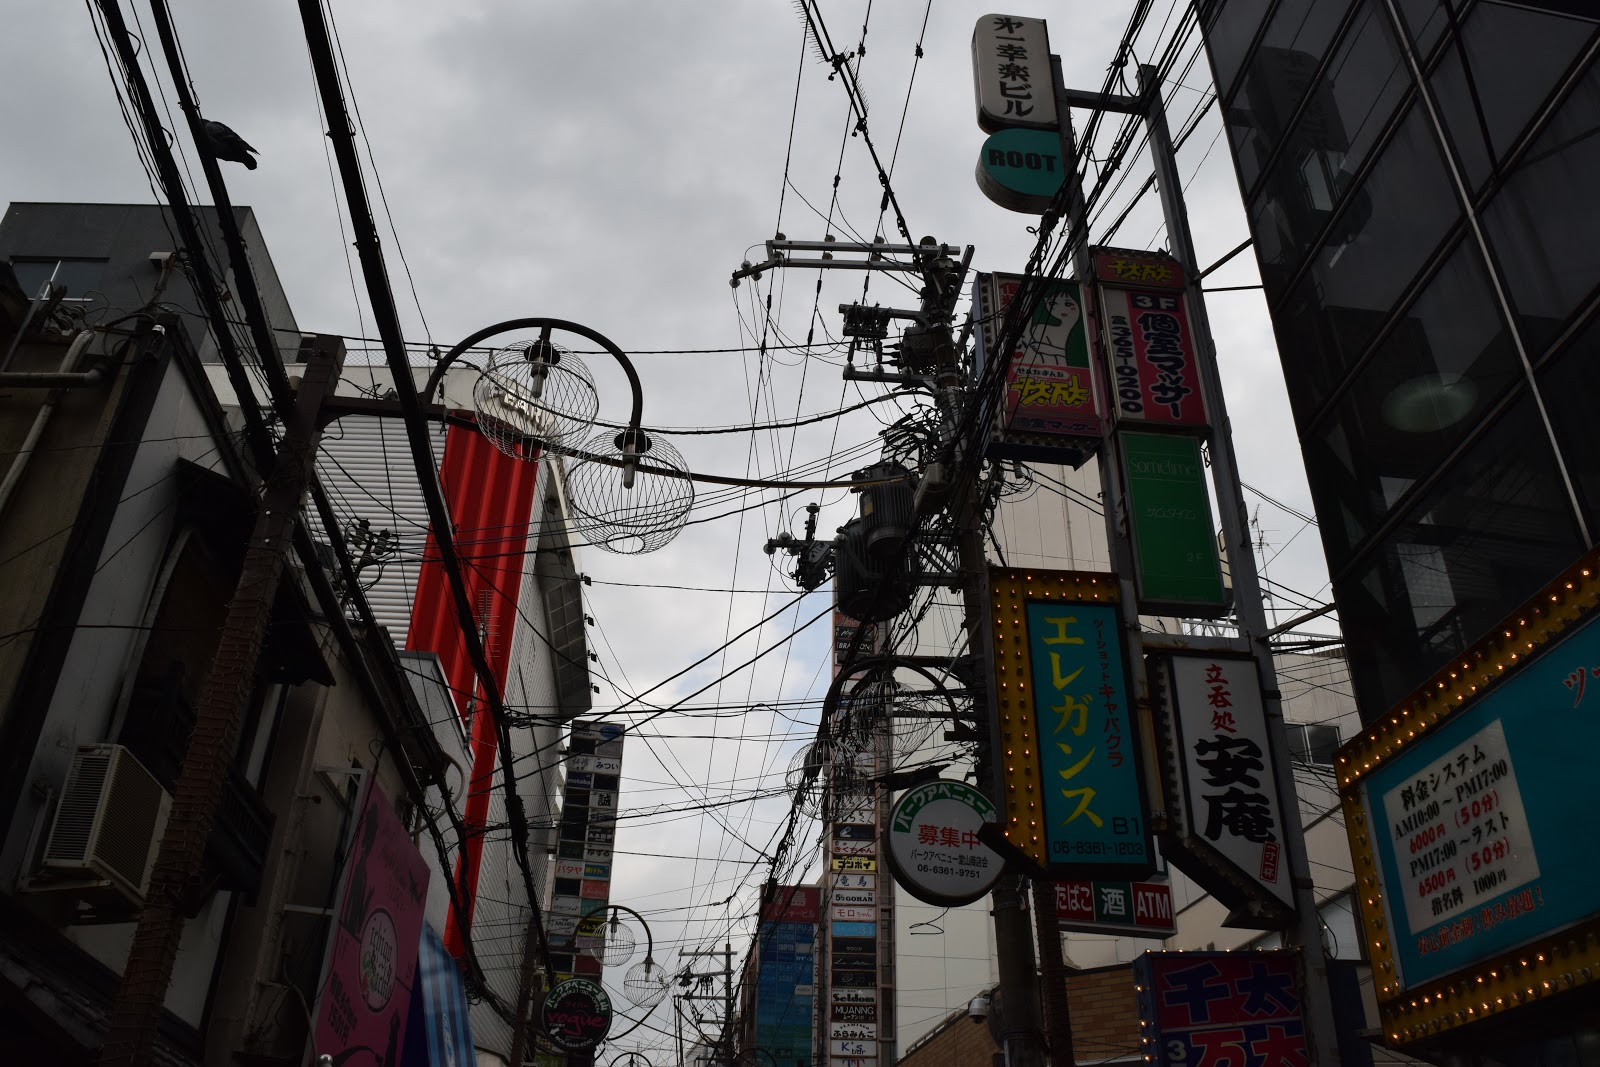 signs, overhead cables and street lights in Umeda, Osaka